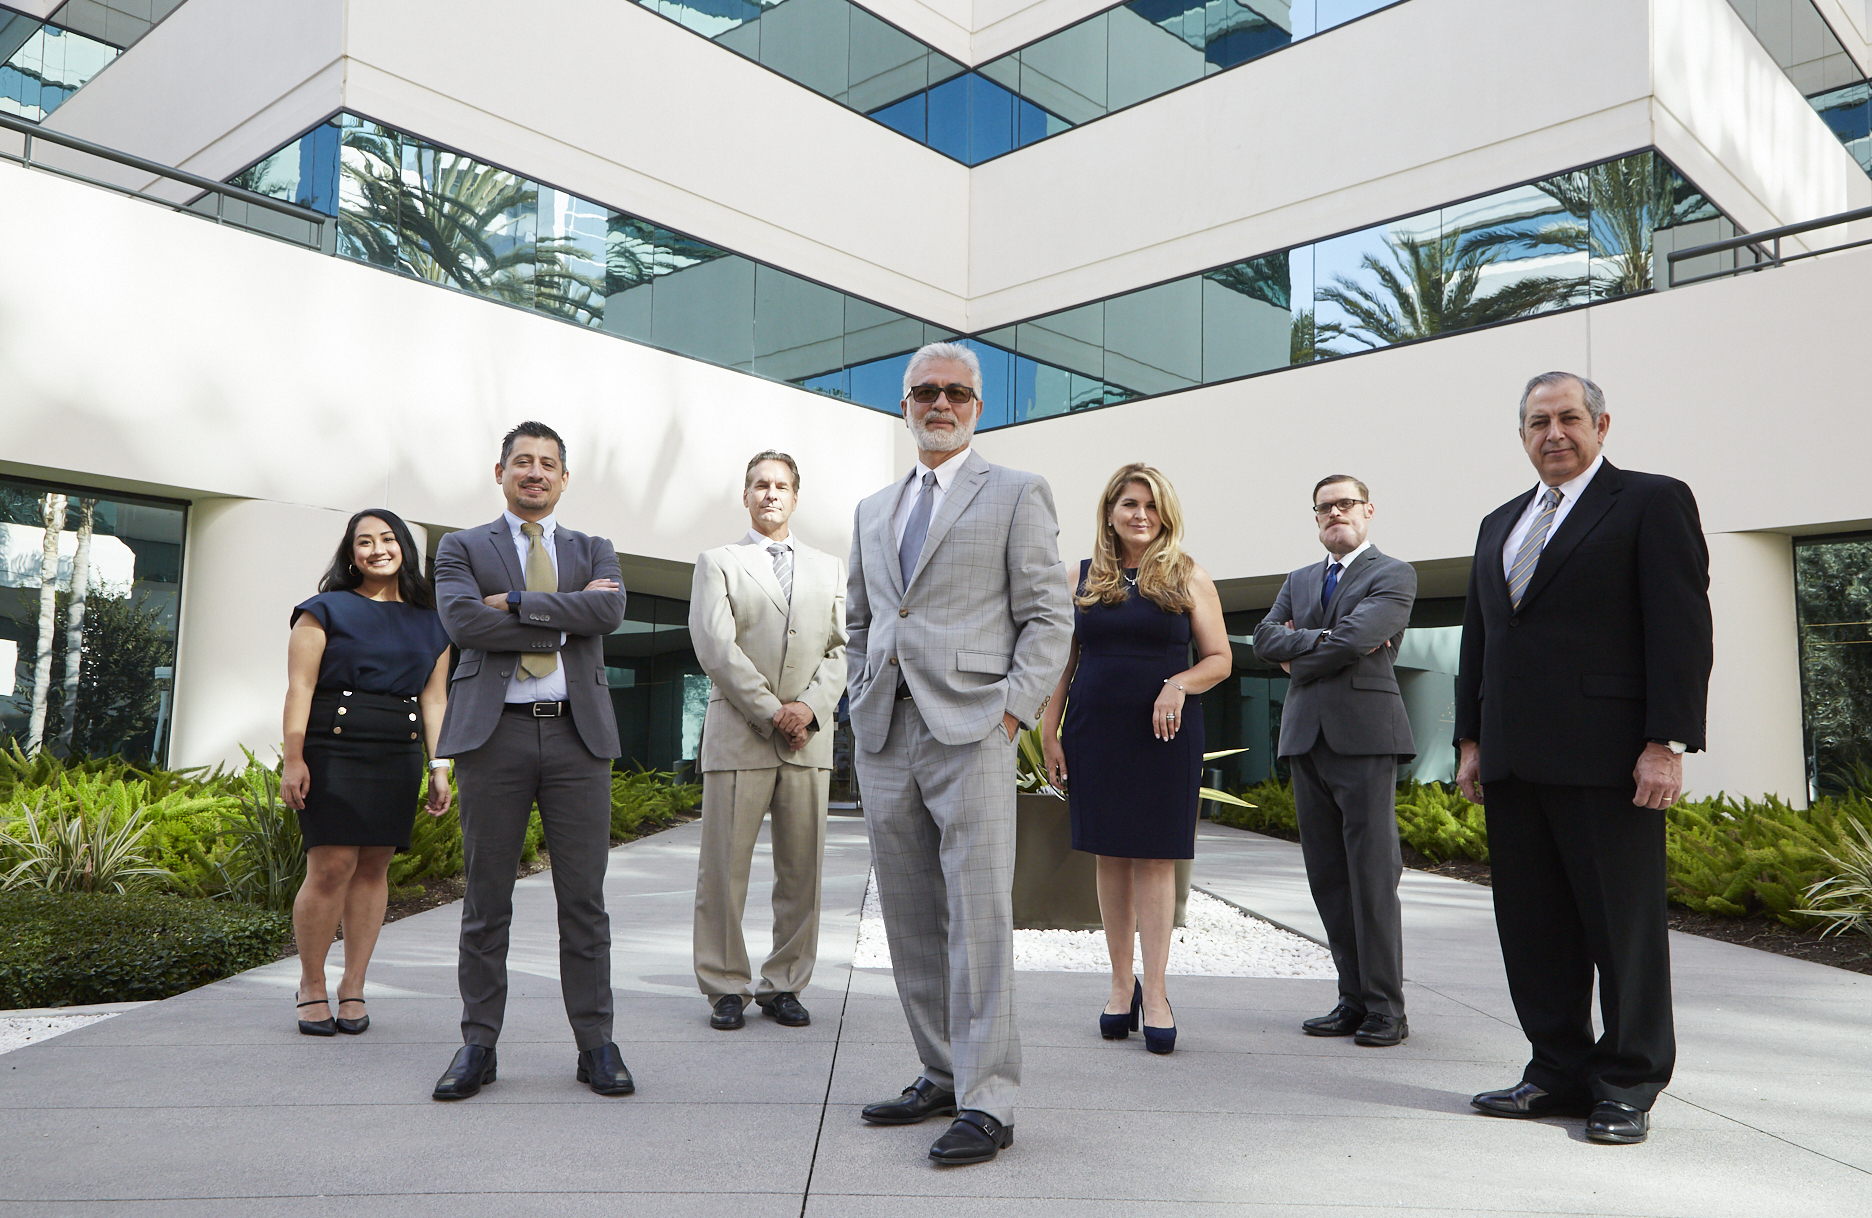 Jafari Law Group is a California business law and intellectual property attorneys